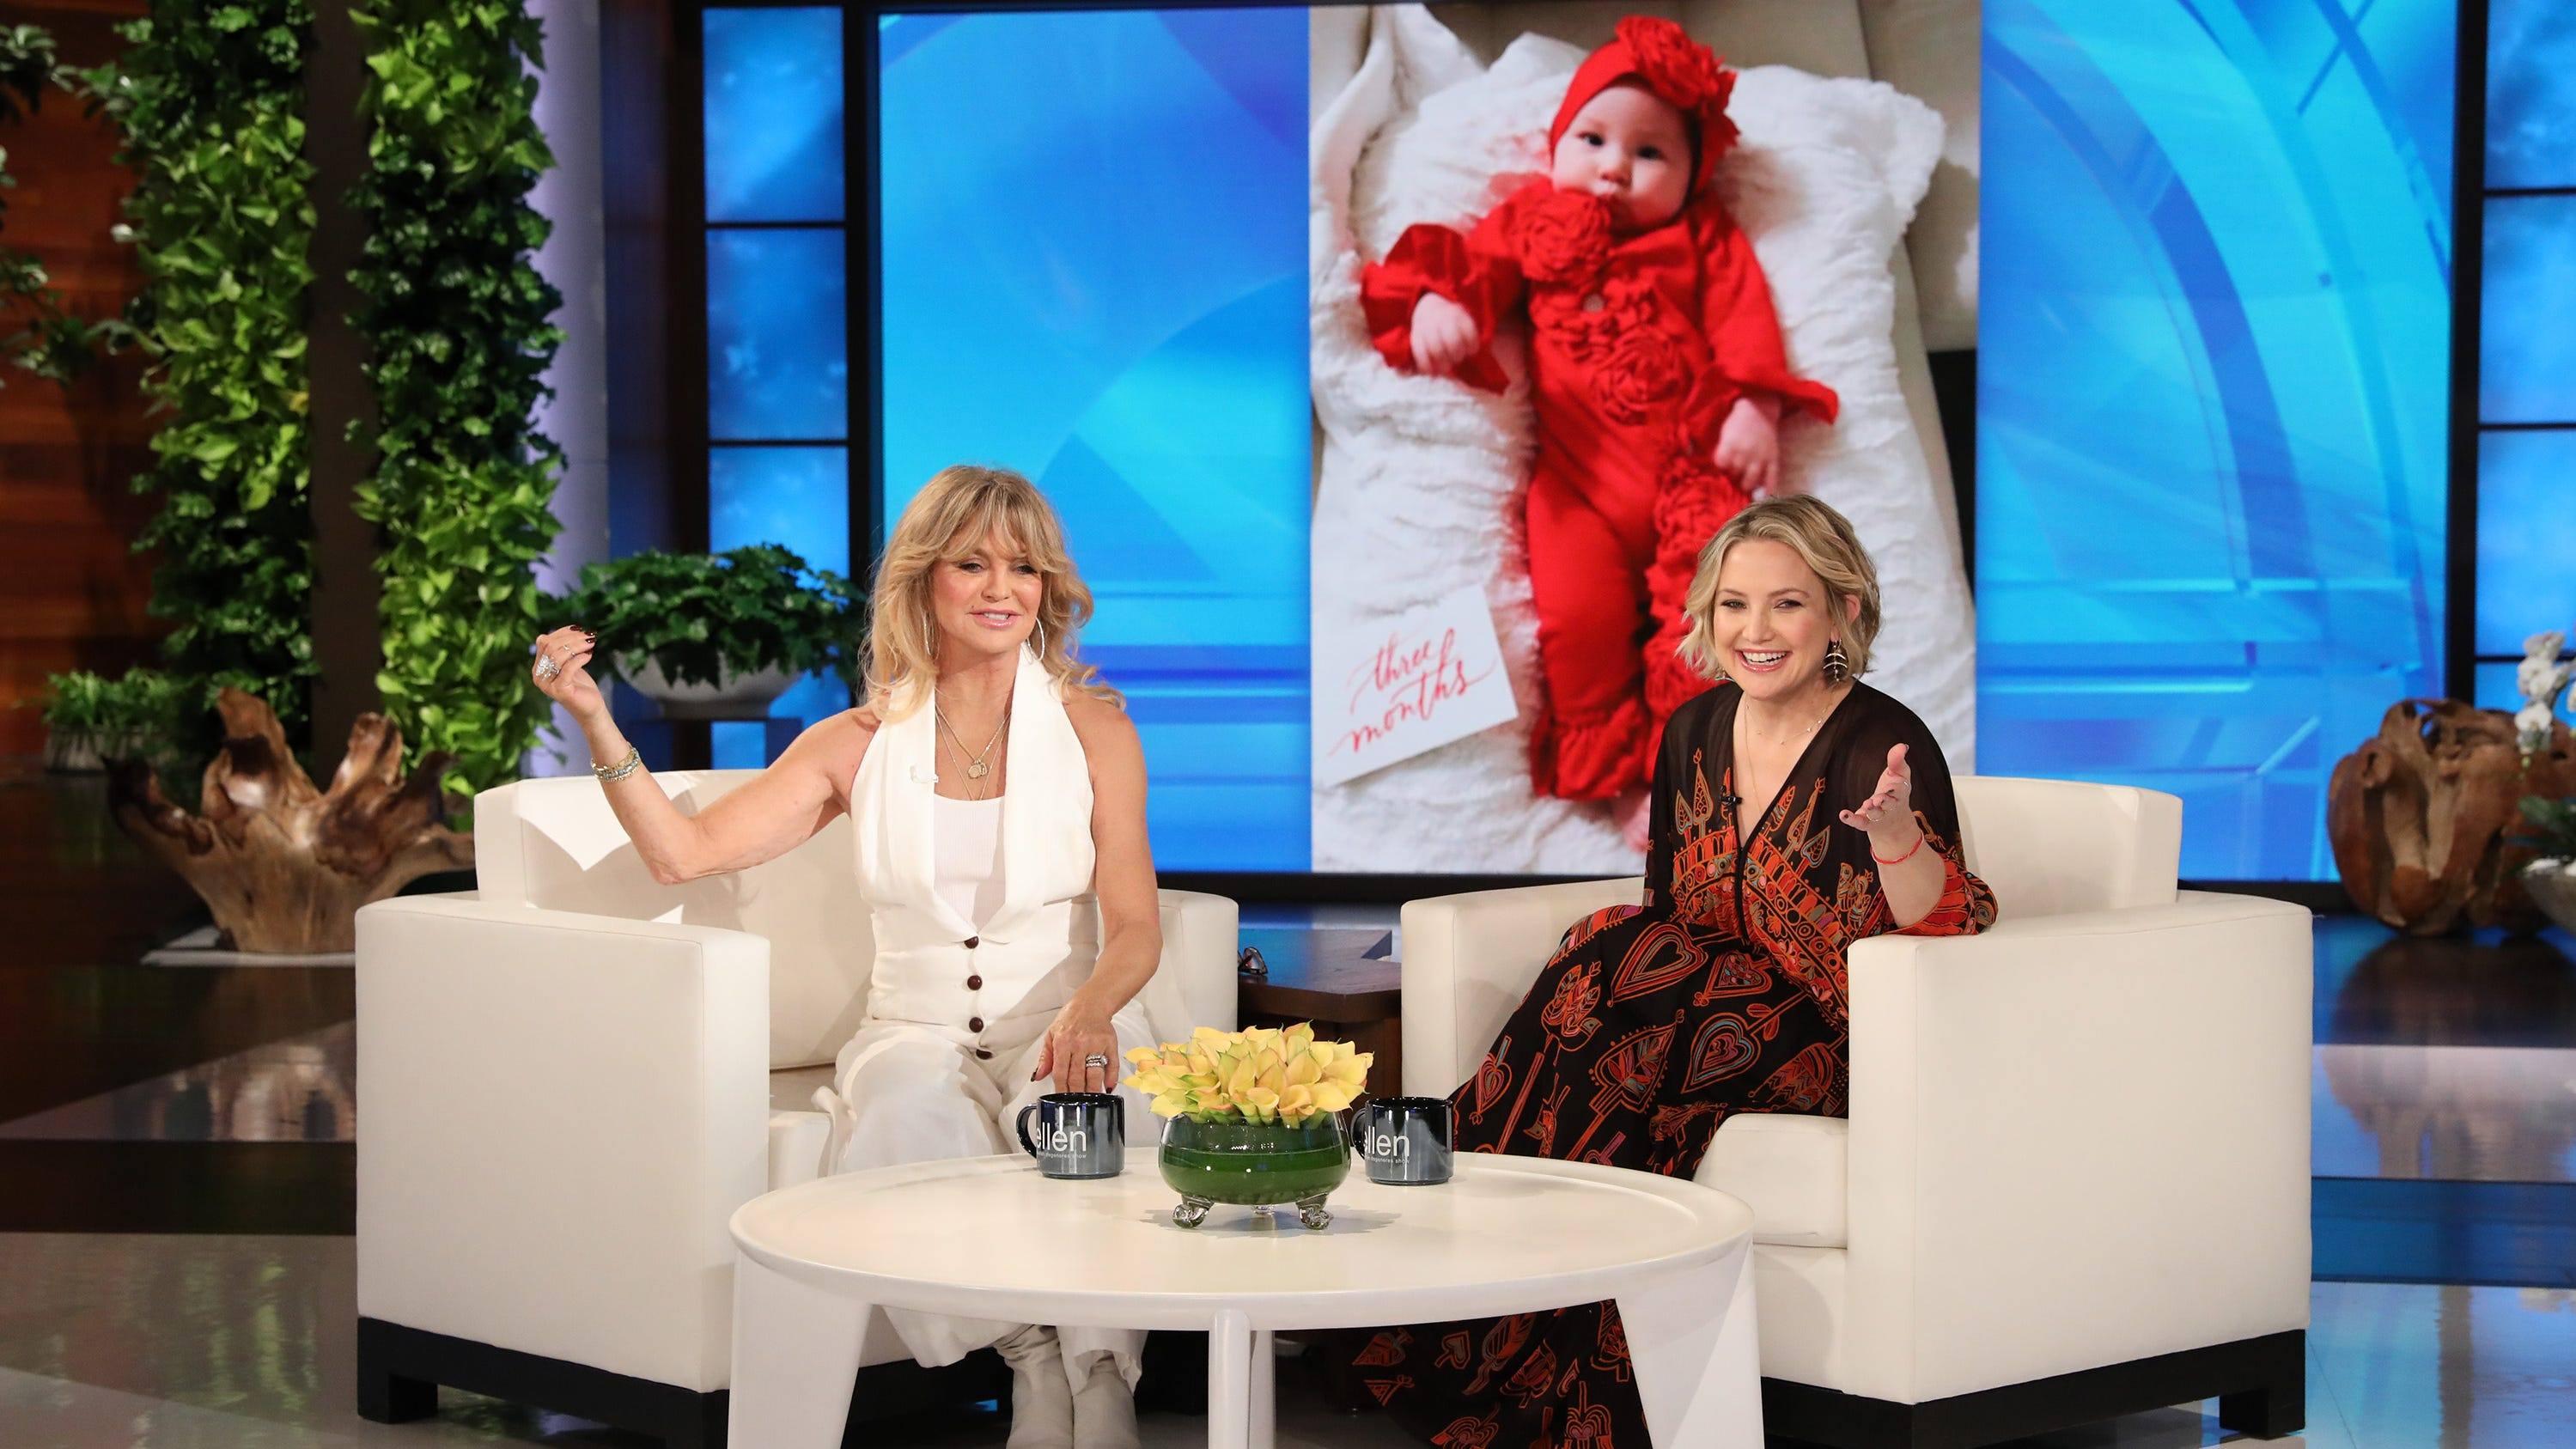 Goldie Hawn and Kate Hudson recall the delivery room antics that ensued during birth of Rani Rose.